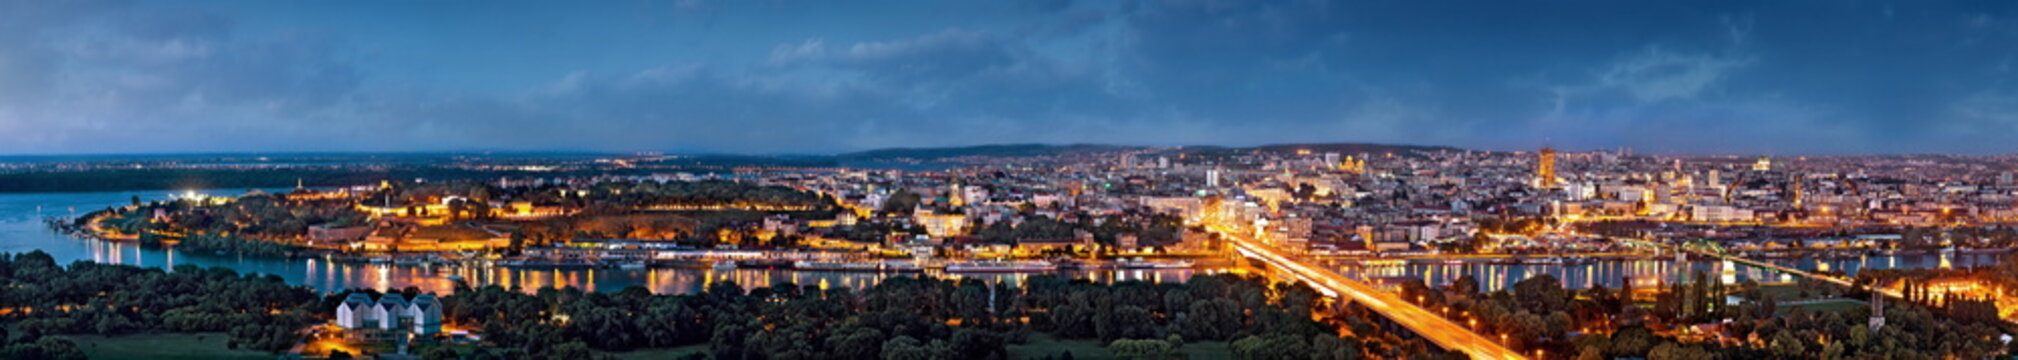 Belgrade panorama by night, Danube and Sava rivers confluence, city lights with blue cloudy sky